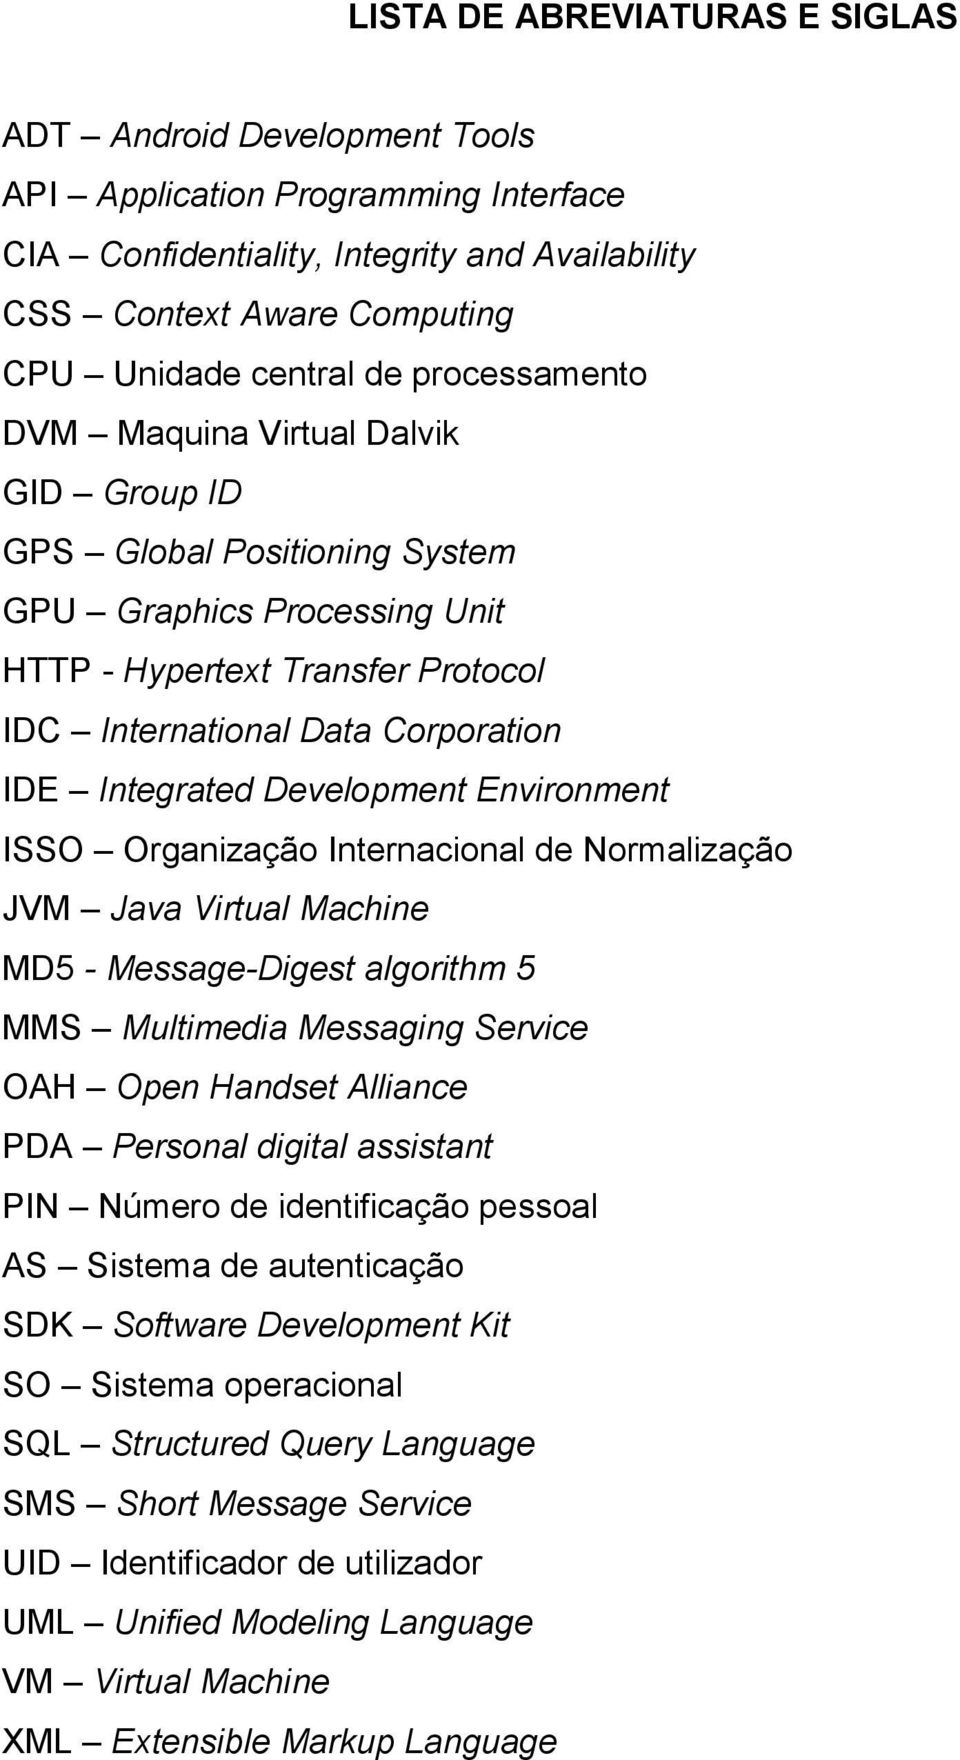 Development Environment ISSO Organização Internacional de Normalização JVM Java Virtual Machine MD5 - Message-Digest algorithm 5 MMS Multimedia Messaging Service OAH Open Handset Alliance PDA